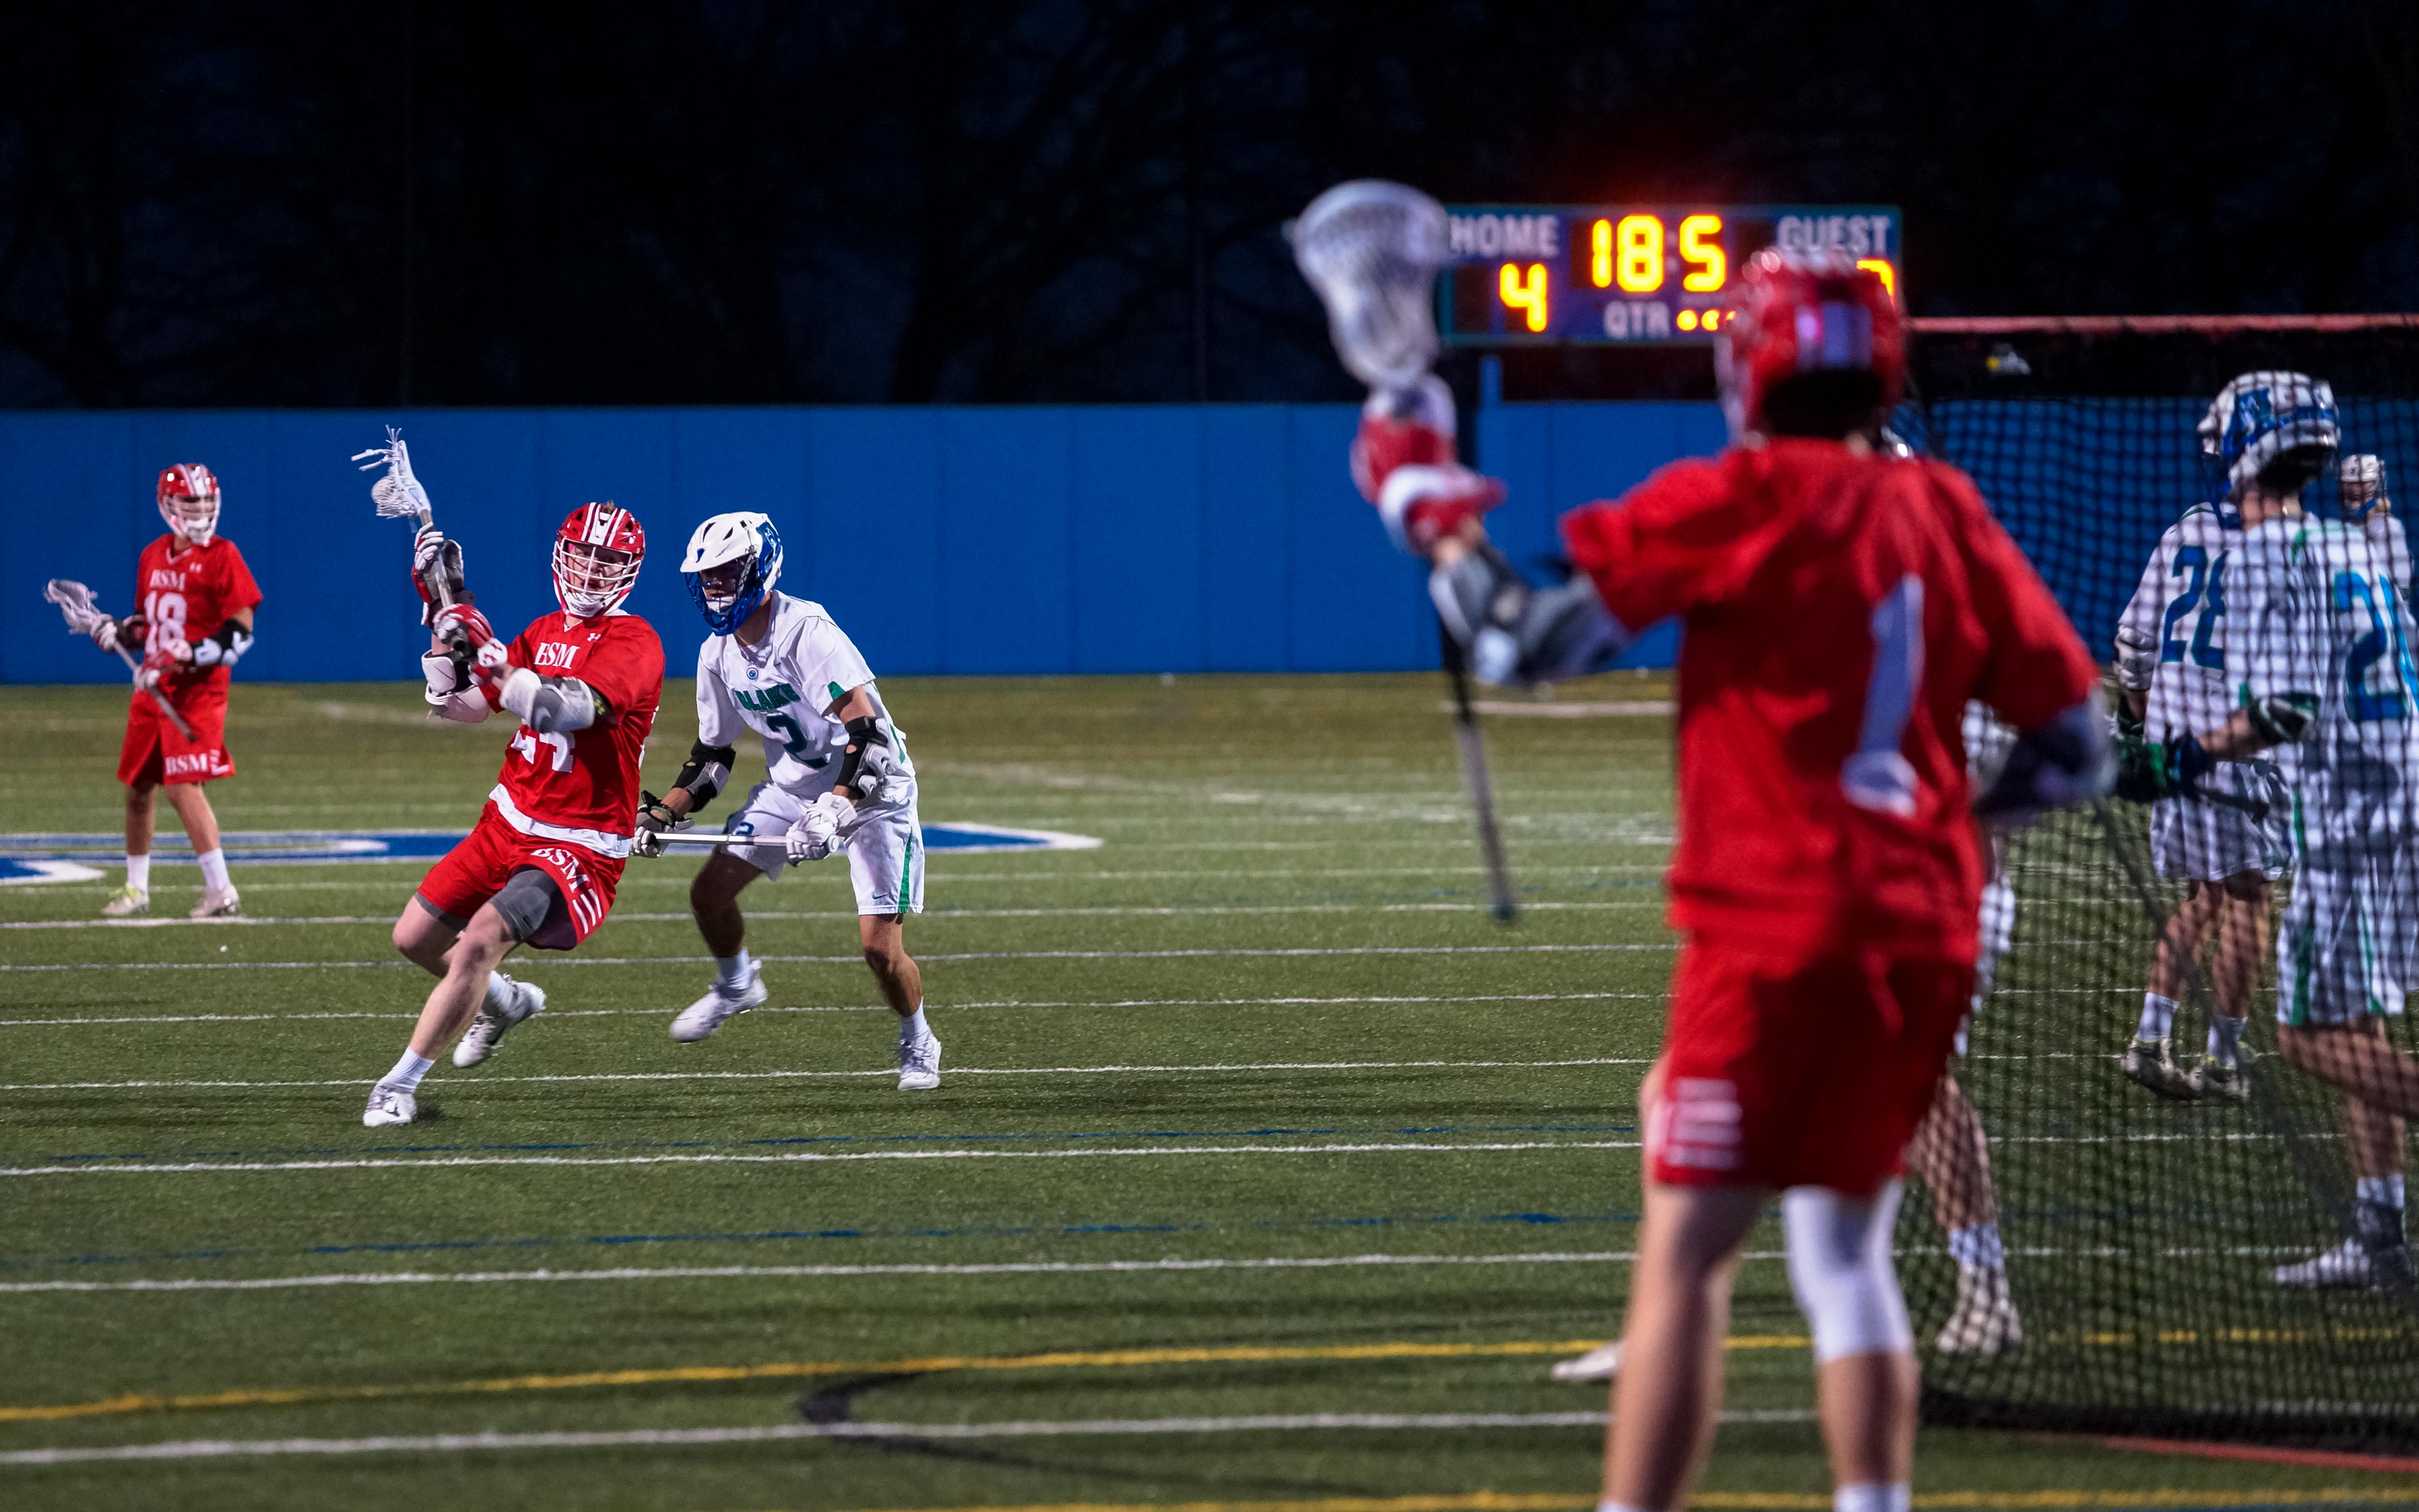 The Red Knights' Quinn Ehlen (red) with one of his two third-quarter goals against Blake in Benilde-St. Margaret's 10-6 win over Blake. Photo by Korey McDermott, SportsEngine